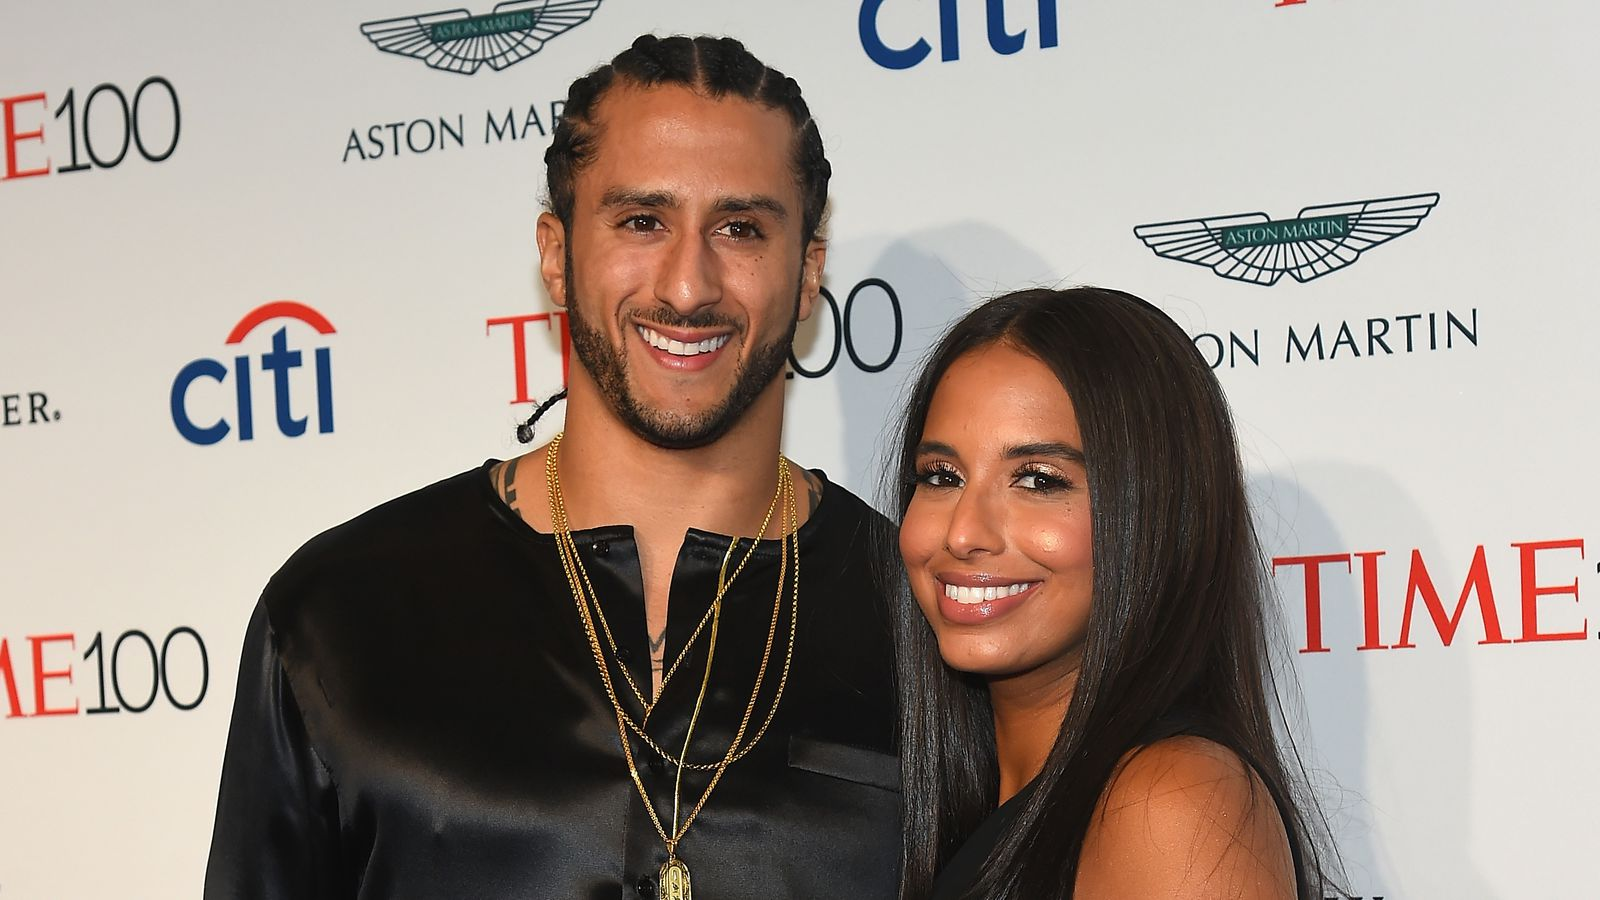 Colin kaepernick dating in Perth